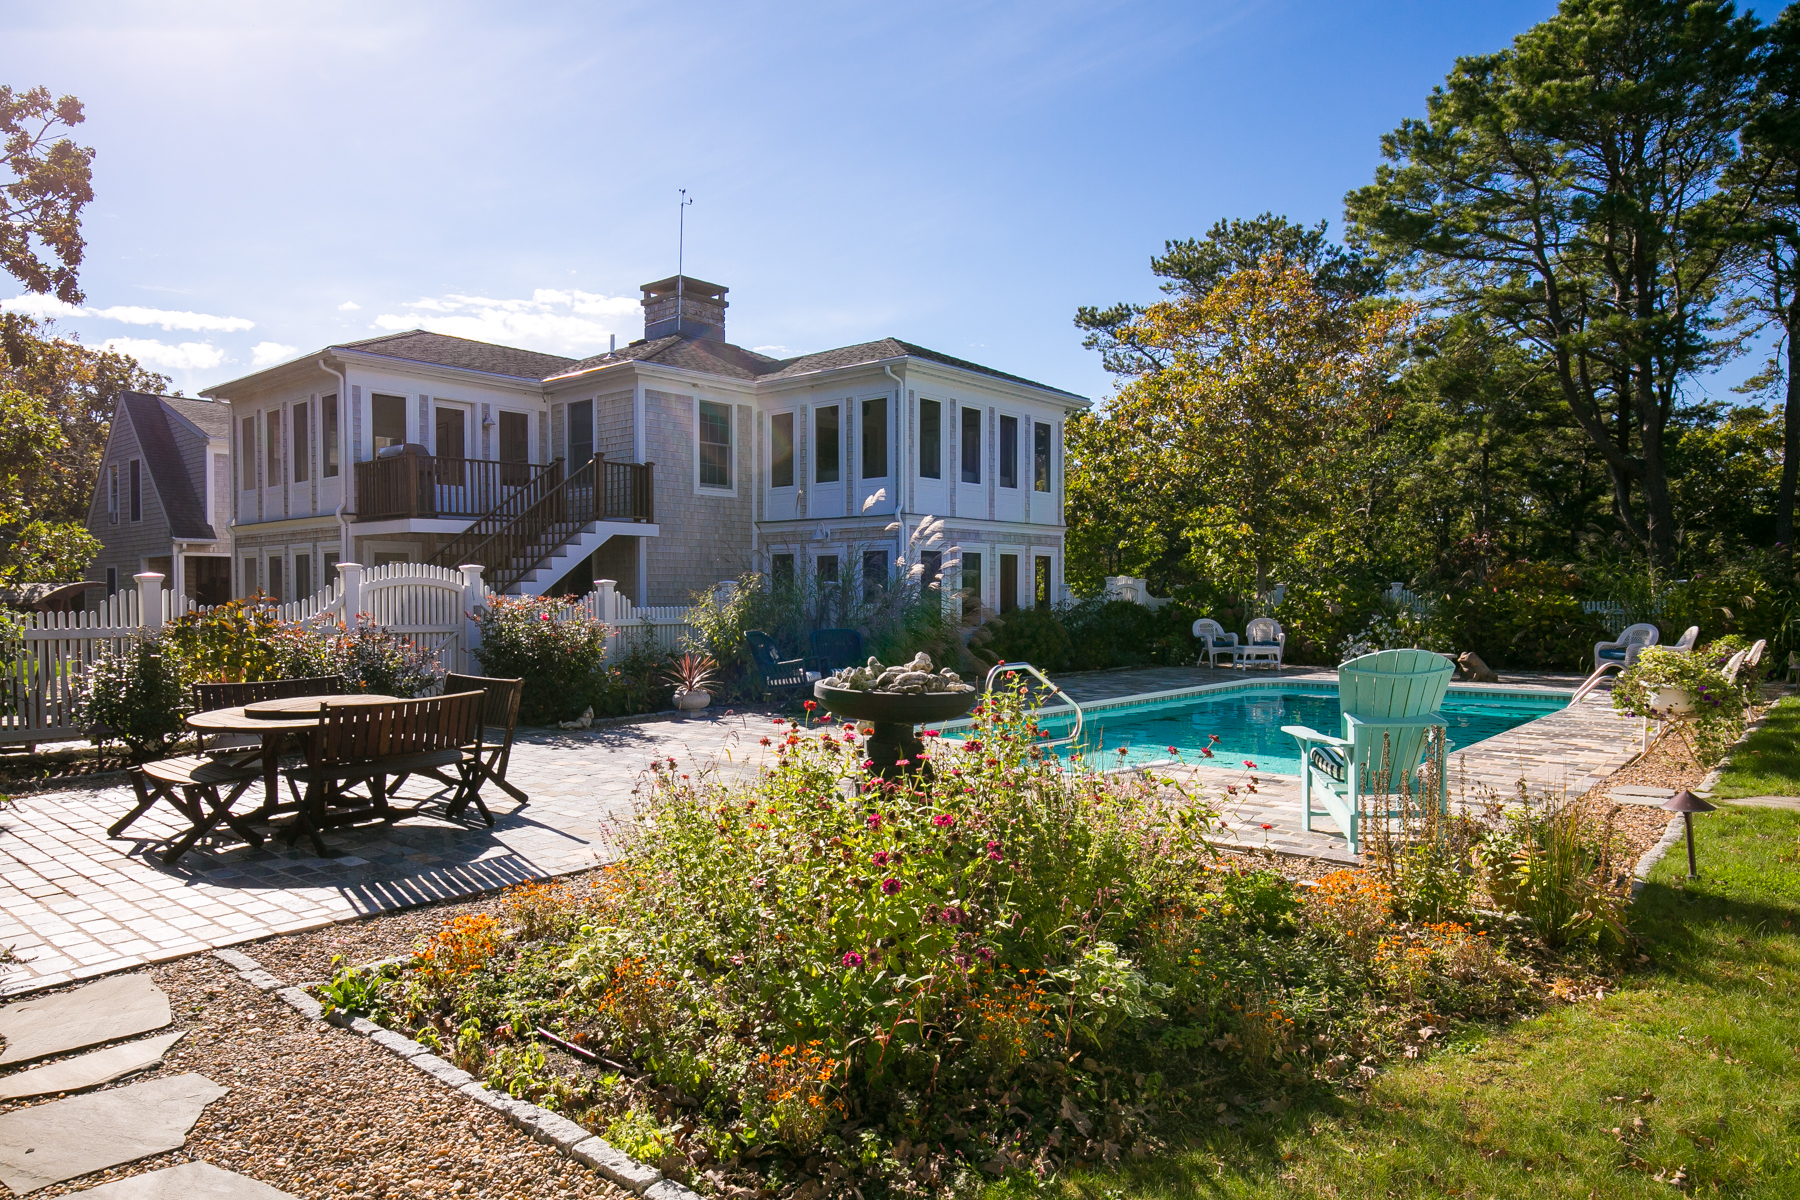 Maison unifamiliale pour l Vente à Custom Chappy Home with Pool 7 Chapel Ave Edgartown, Massachusetts 02539 États-Unis